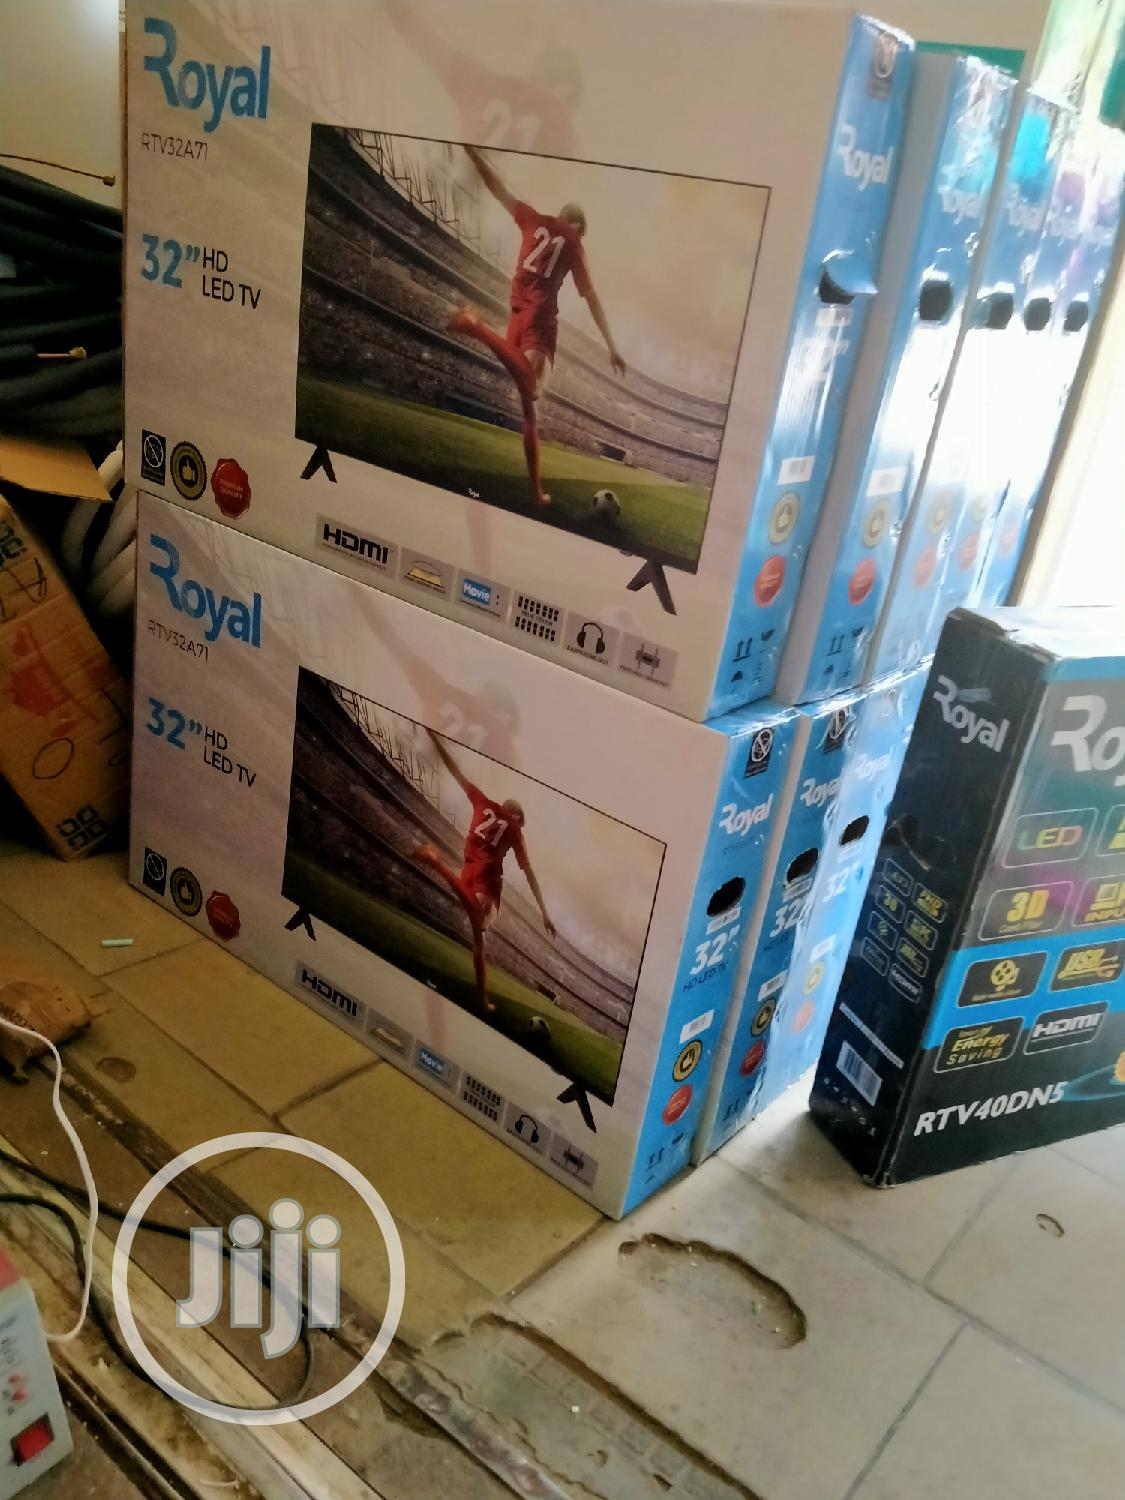 Royal 32 Inch Smart | TV & DVD Equipment for sale in Wuse, Abuja (FCT) State, Nigeria